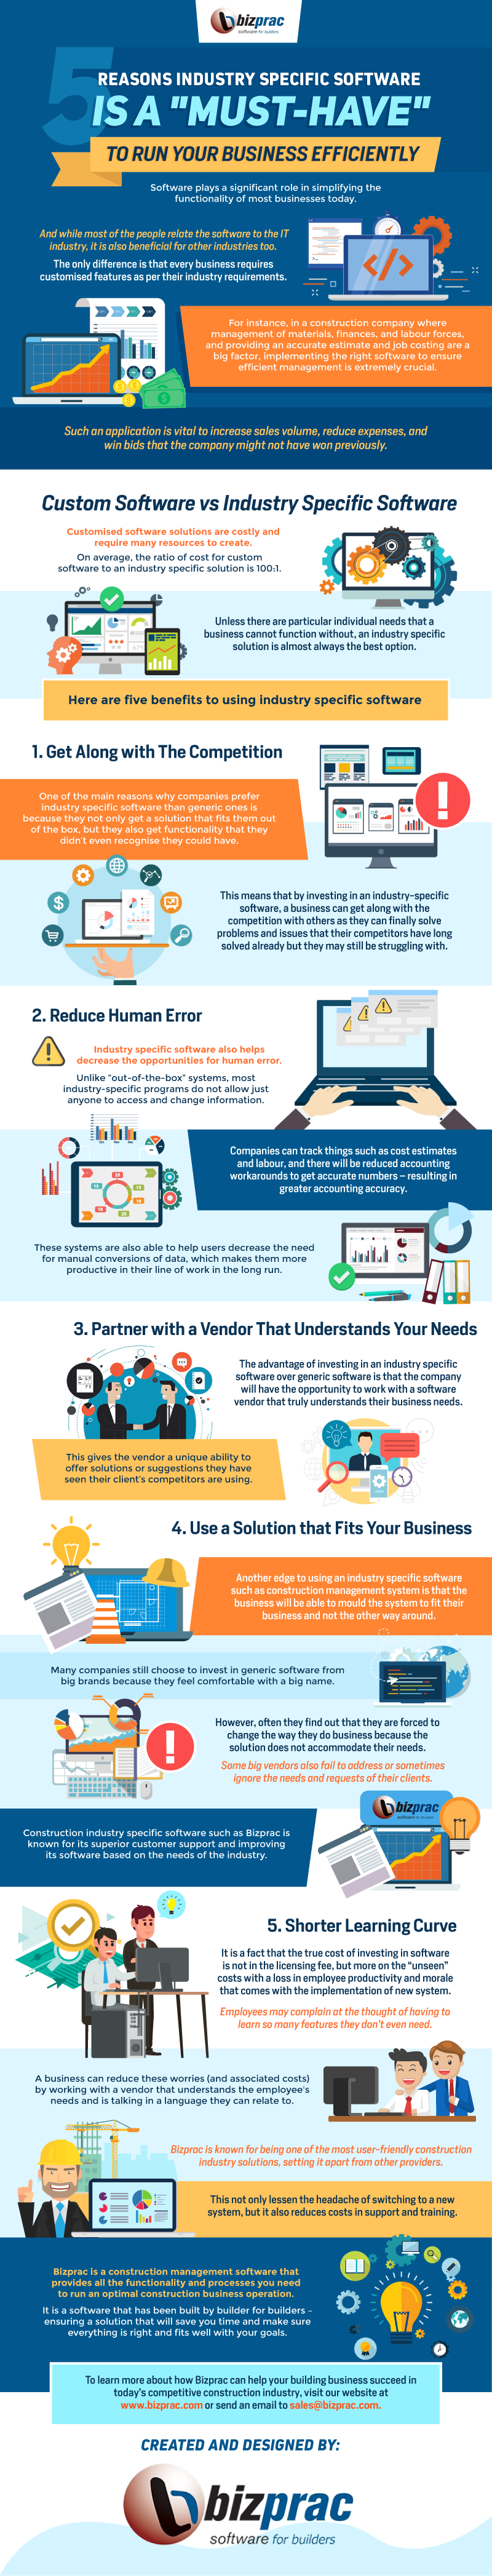 "5 Reasons Industry Specific Software Is A ""Must-Have"" to Run Your Business Efficiently - Infographic"